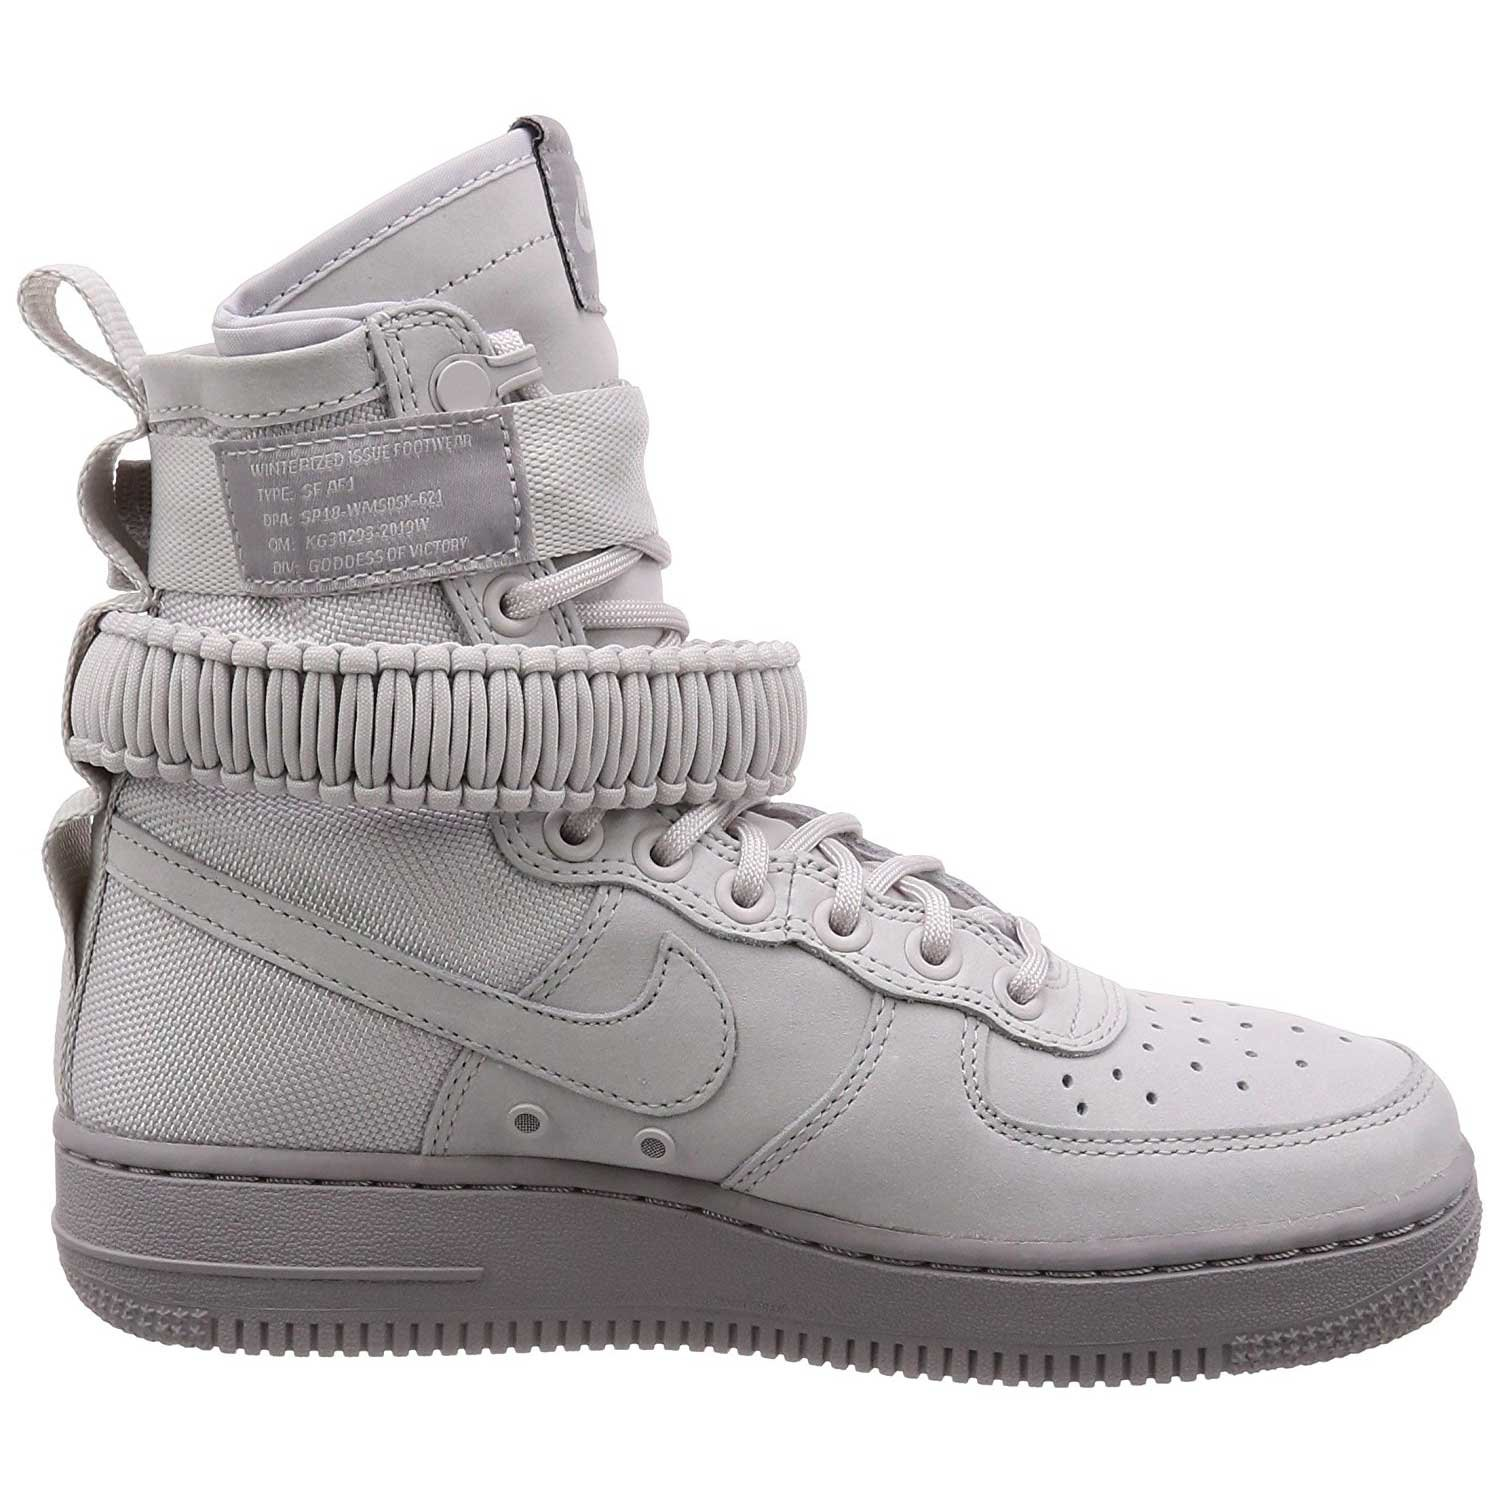 NIKE Women's SF AF1 Casual Shoe B078P3LR2W 8.5 B(M) US|Vast Grey/Atmosphere Grey